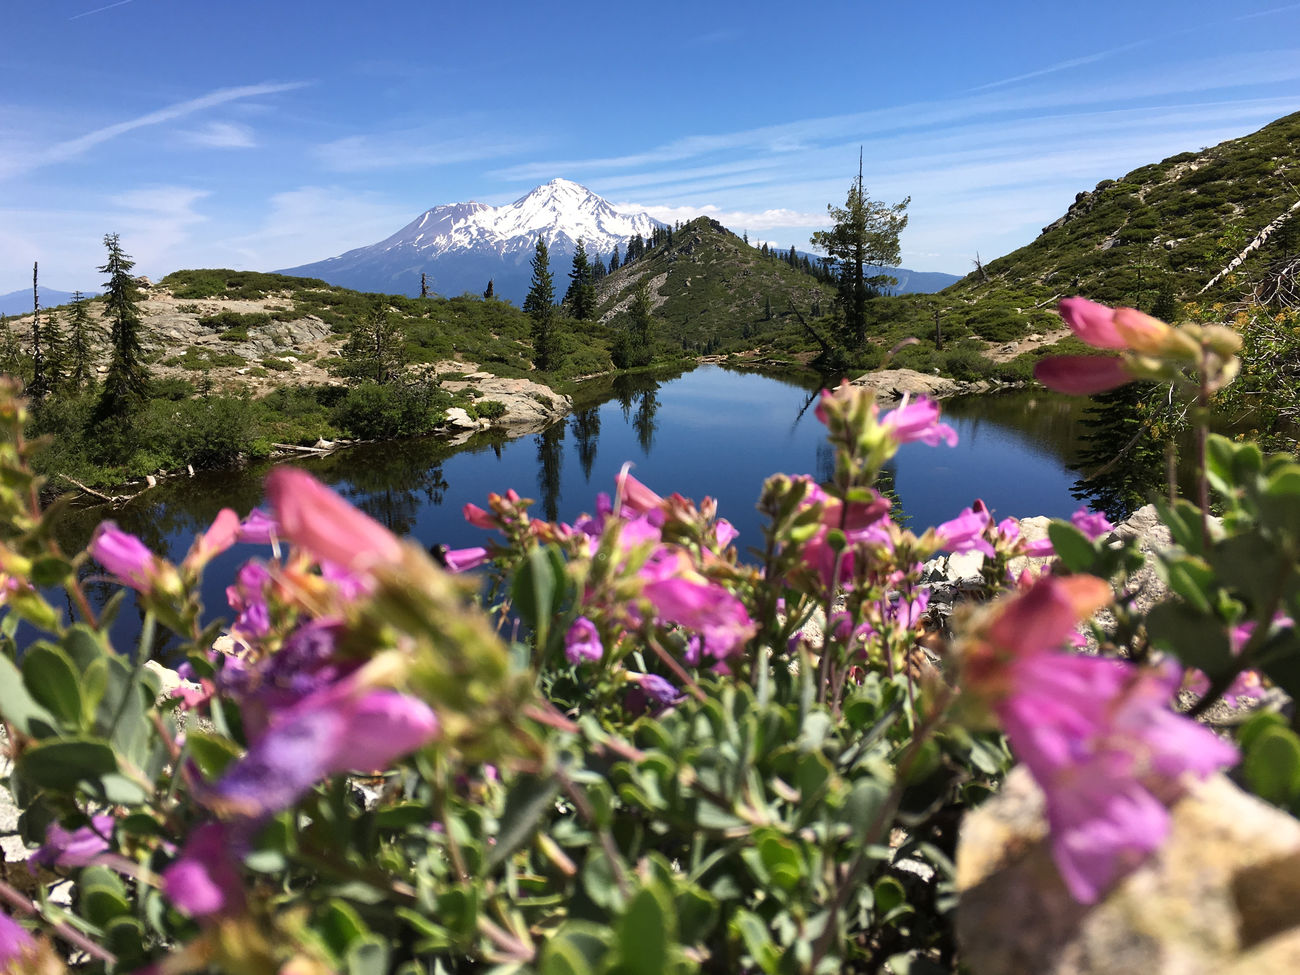 Beauty In Nature Day Flower Flower Head Heart Lake Landscape Mountain Mountain Lake Mt. Shasta Nature No People Northern California Outdoors Plant Scenics Siskiyou County Sky Tree Water Wildflower